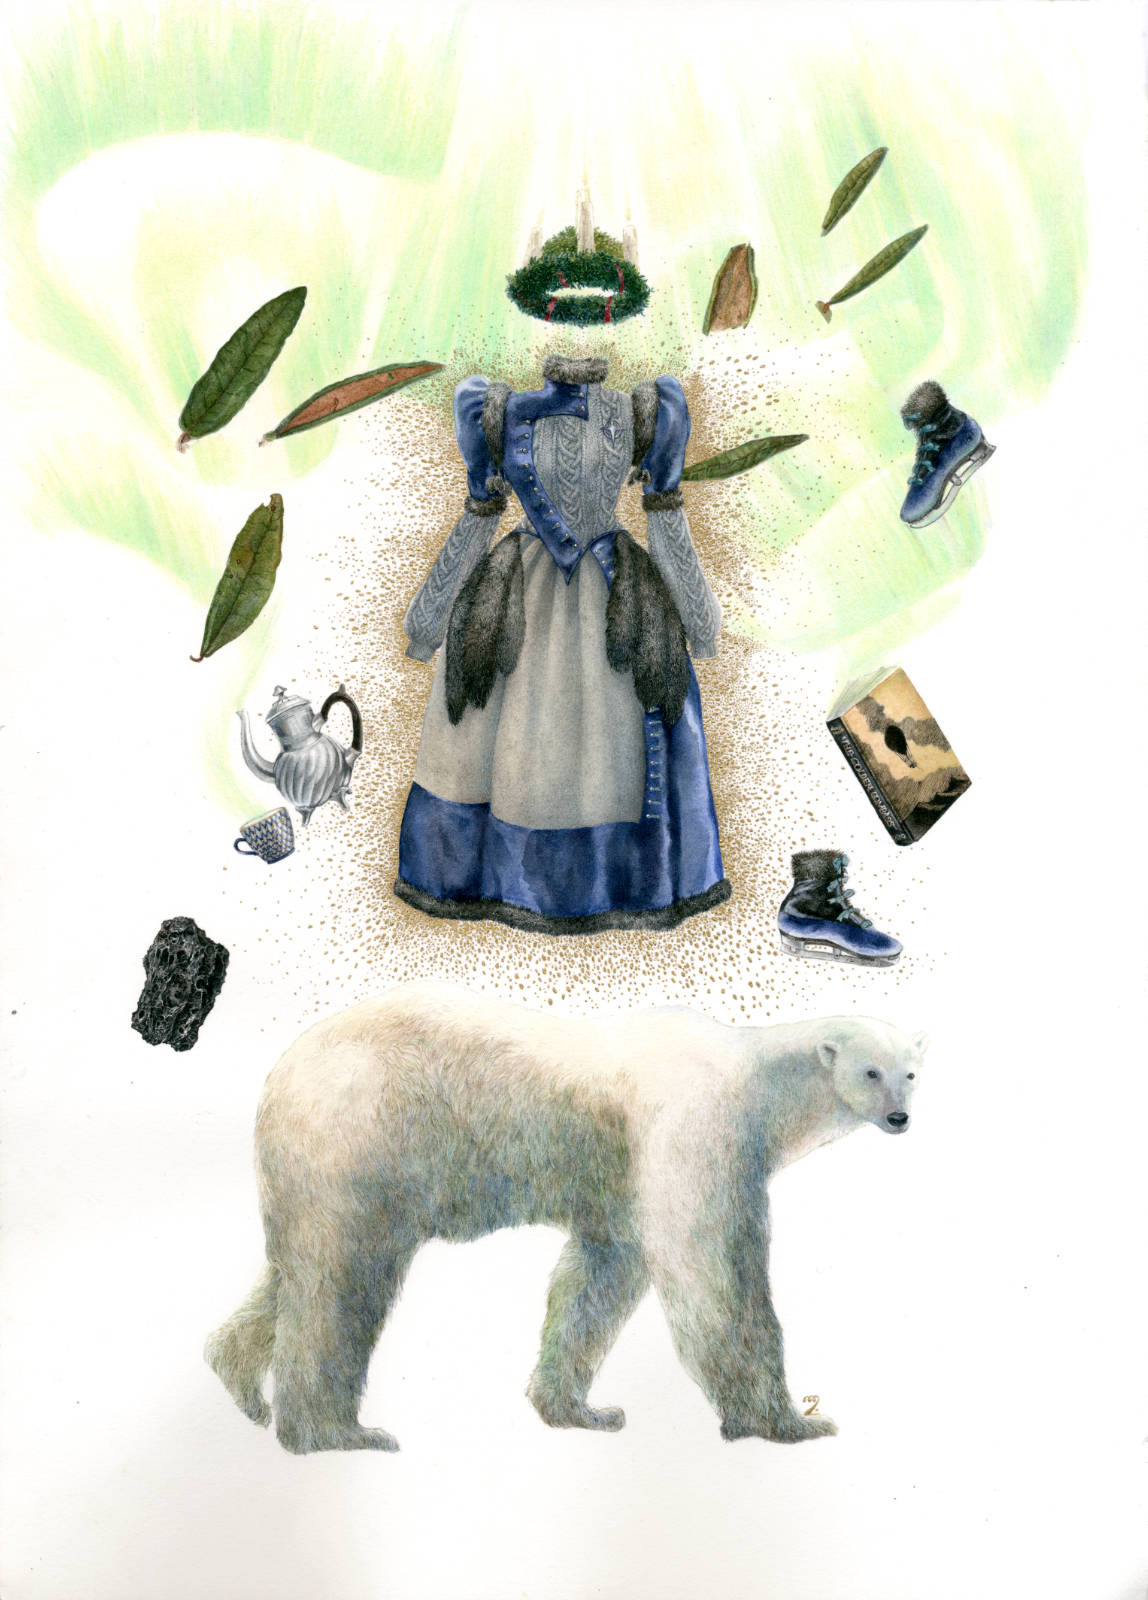 Technical illustration of a herbarium made up with fashionable lolita clothing, and an overall northern theme : polar bear, labrador tea leaves, sankt lucia krona, vintage russian tea set, the golden compass by Philip Pullman, ice skates and a wool and velvet dress trimmed with fur